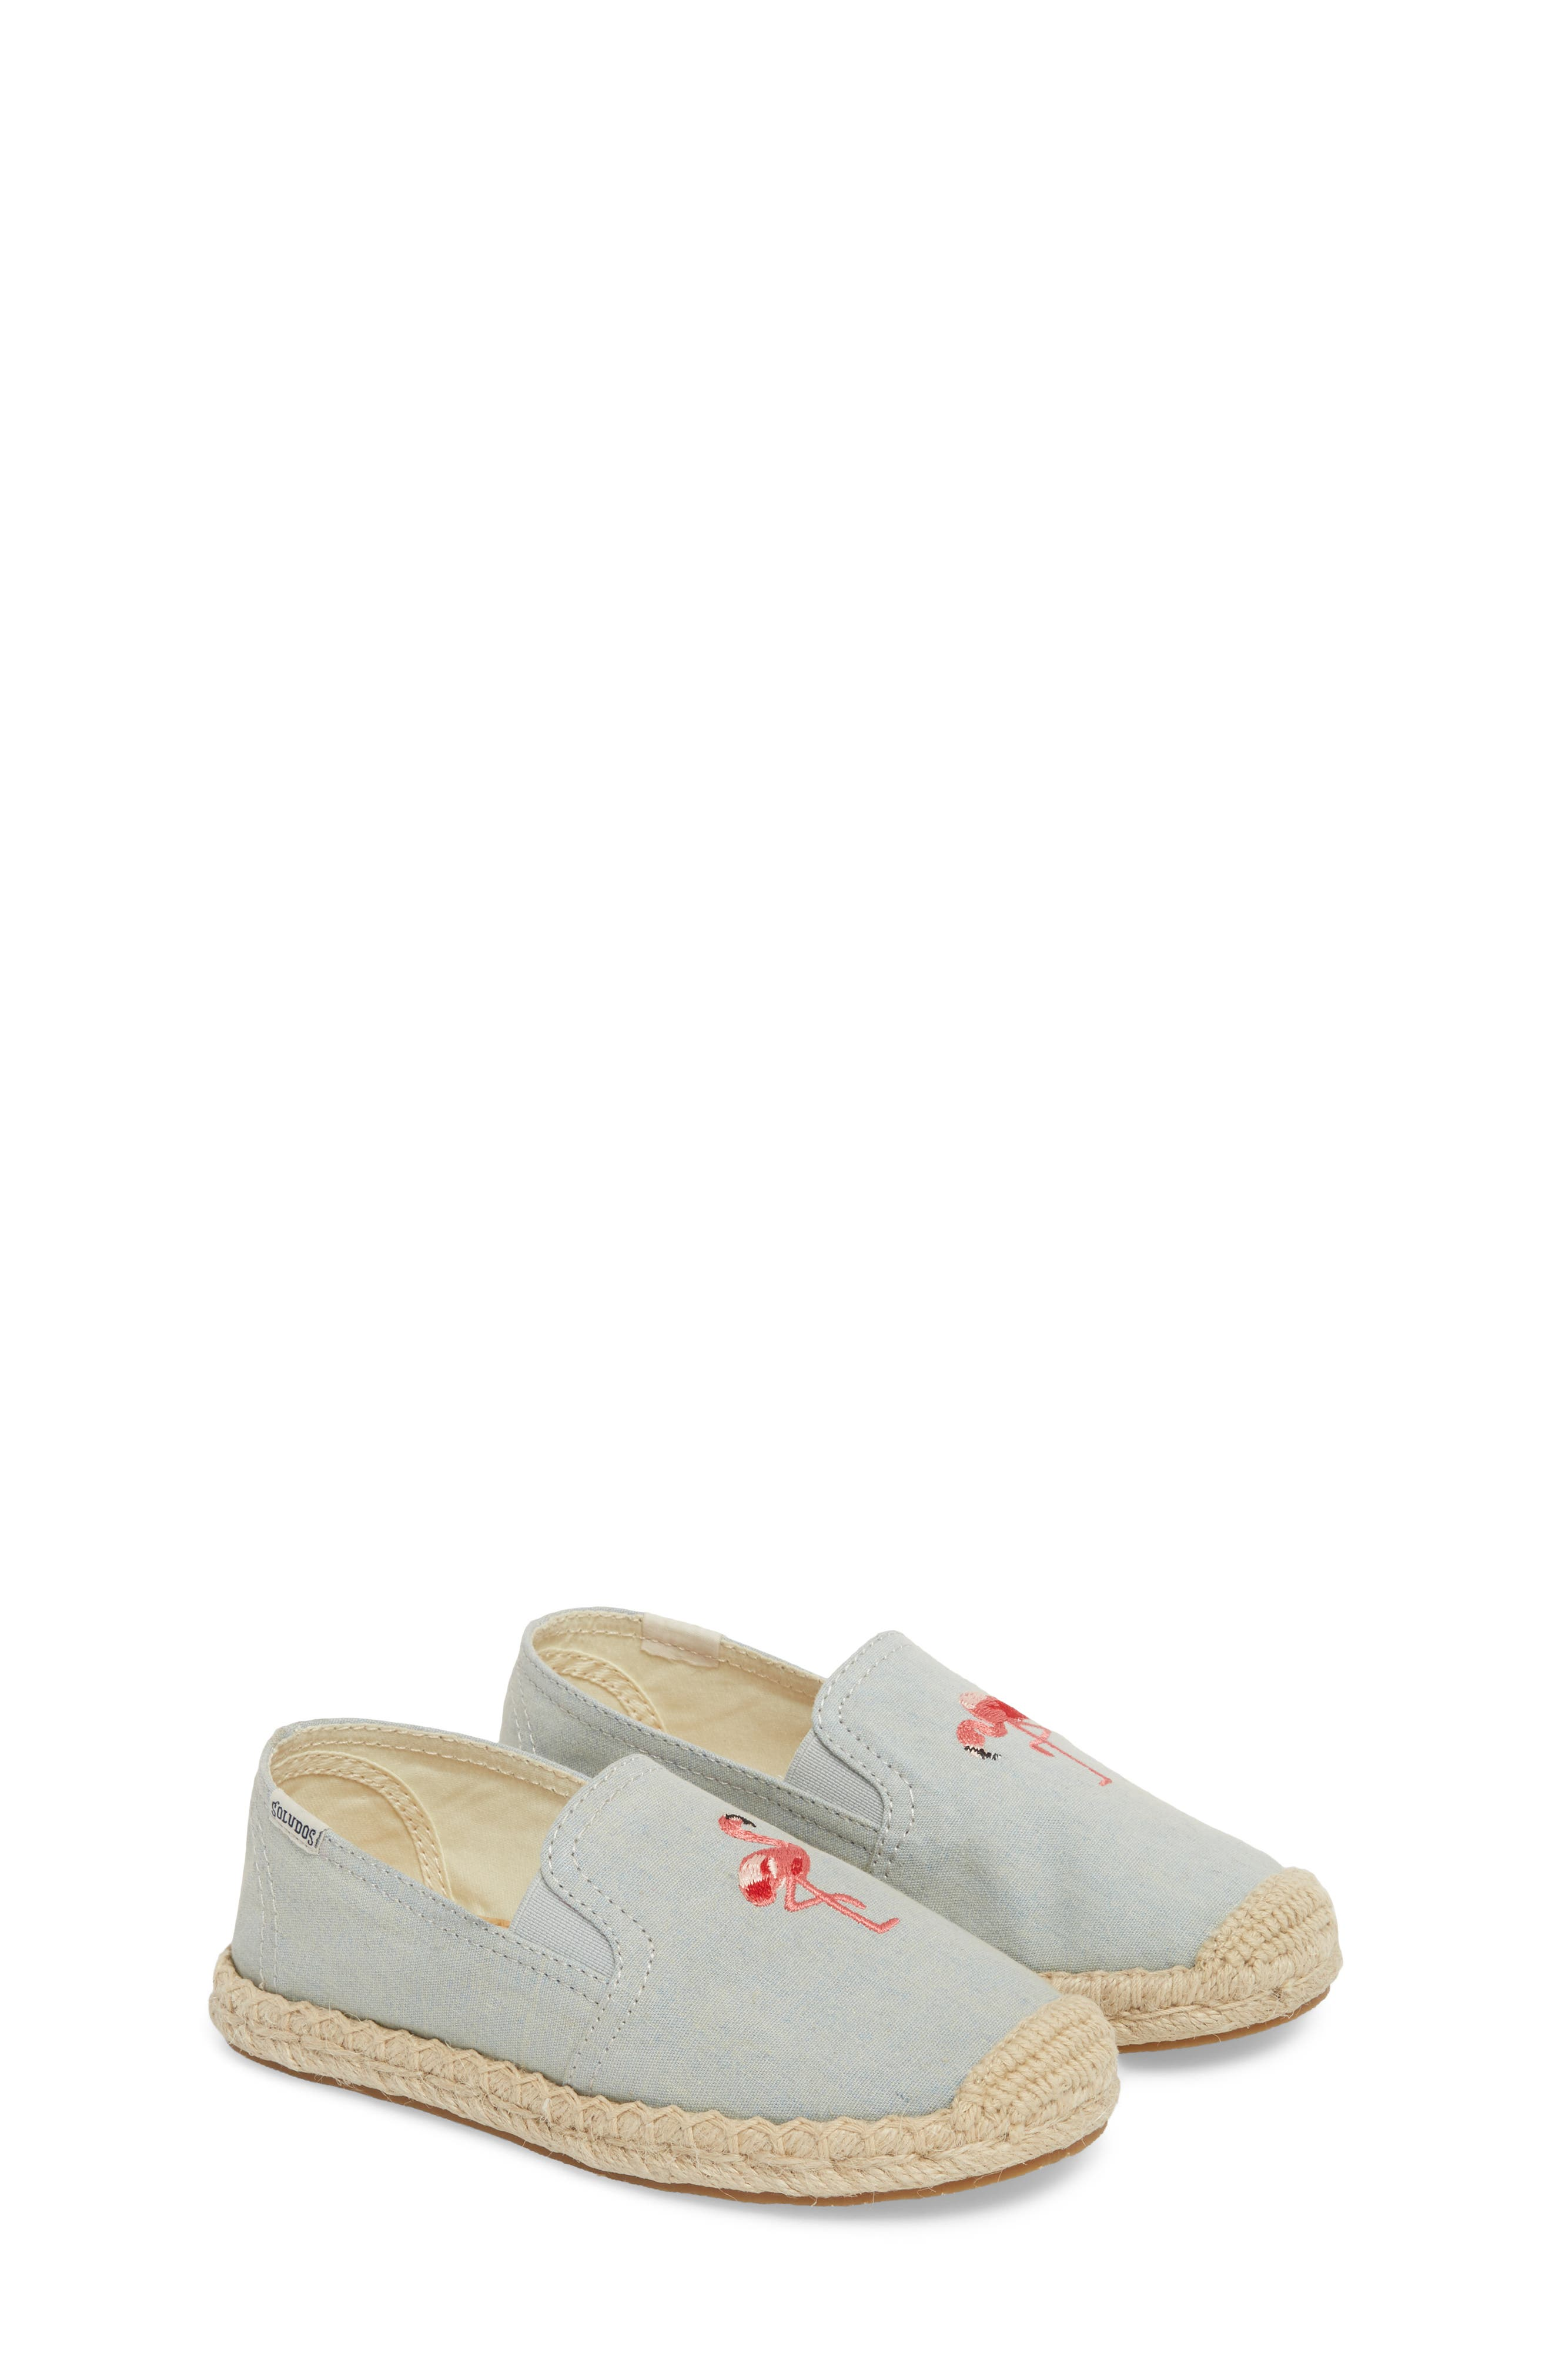 SOLUDOS, Flamingo Embroidered Espadrille, Alternate thumbnail 2, color, CHAMBRAY